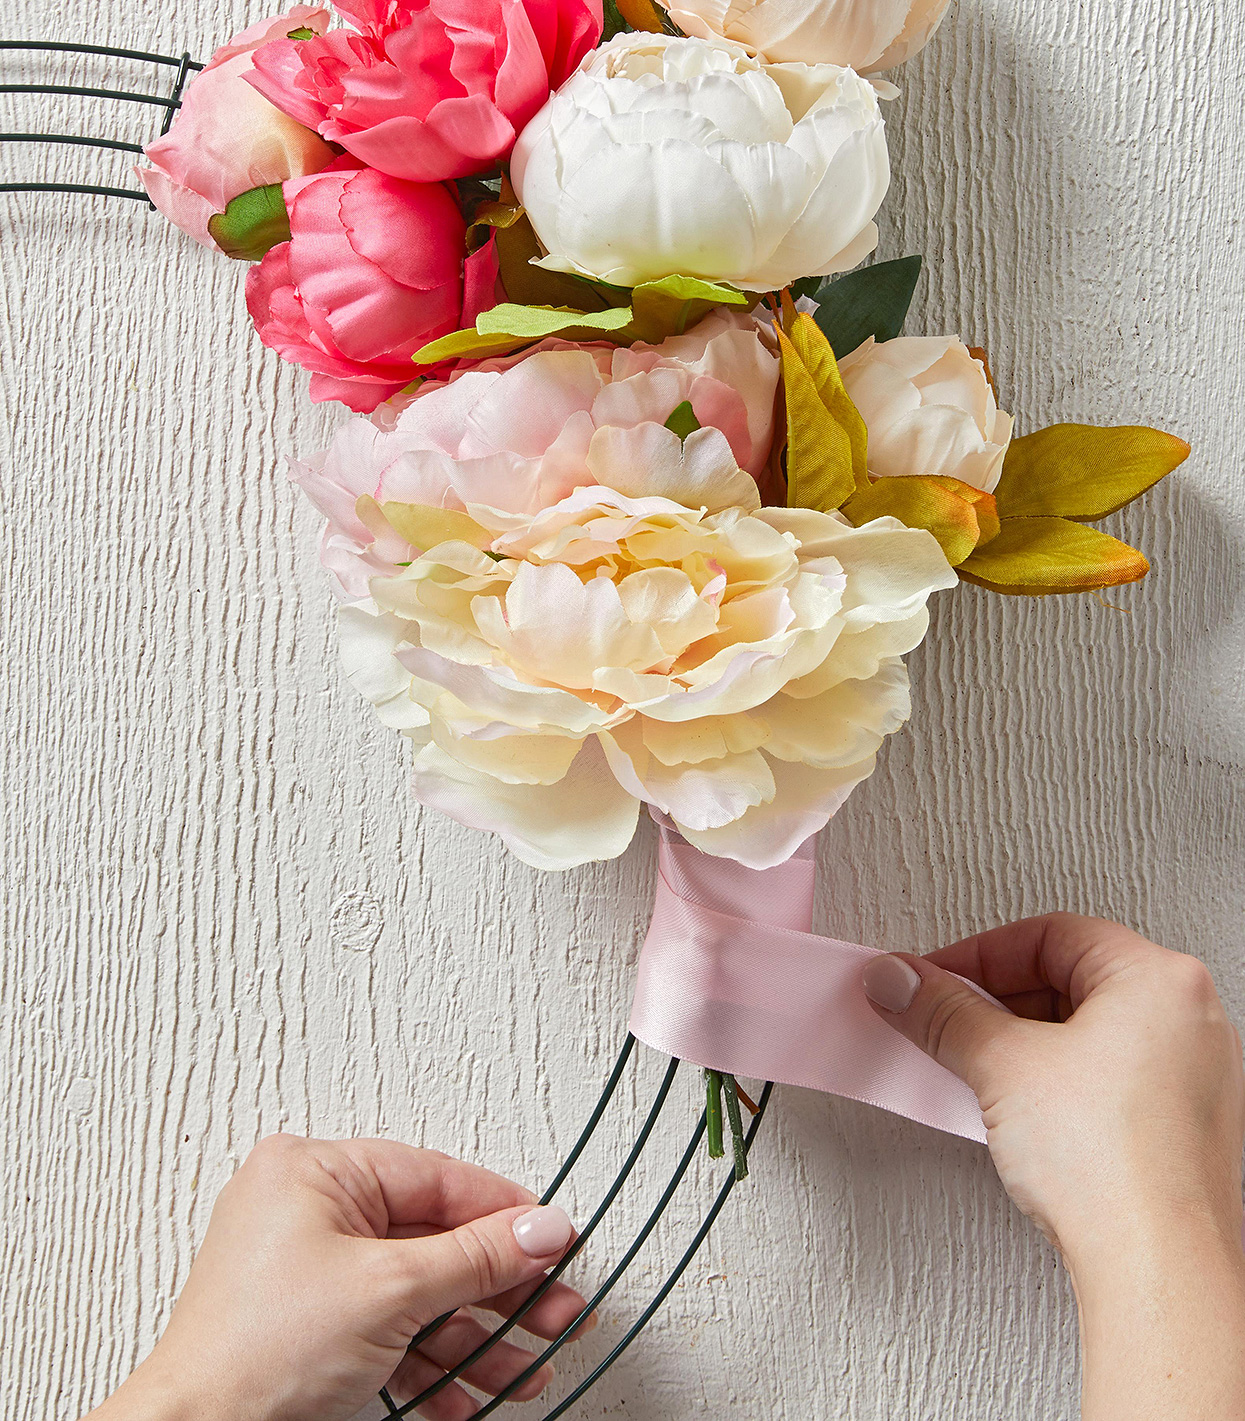 securing artificial floral stems to wreath with pink ribbon